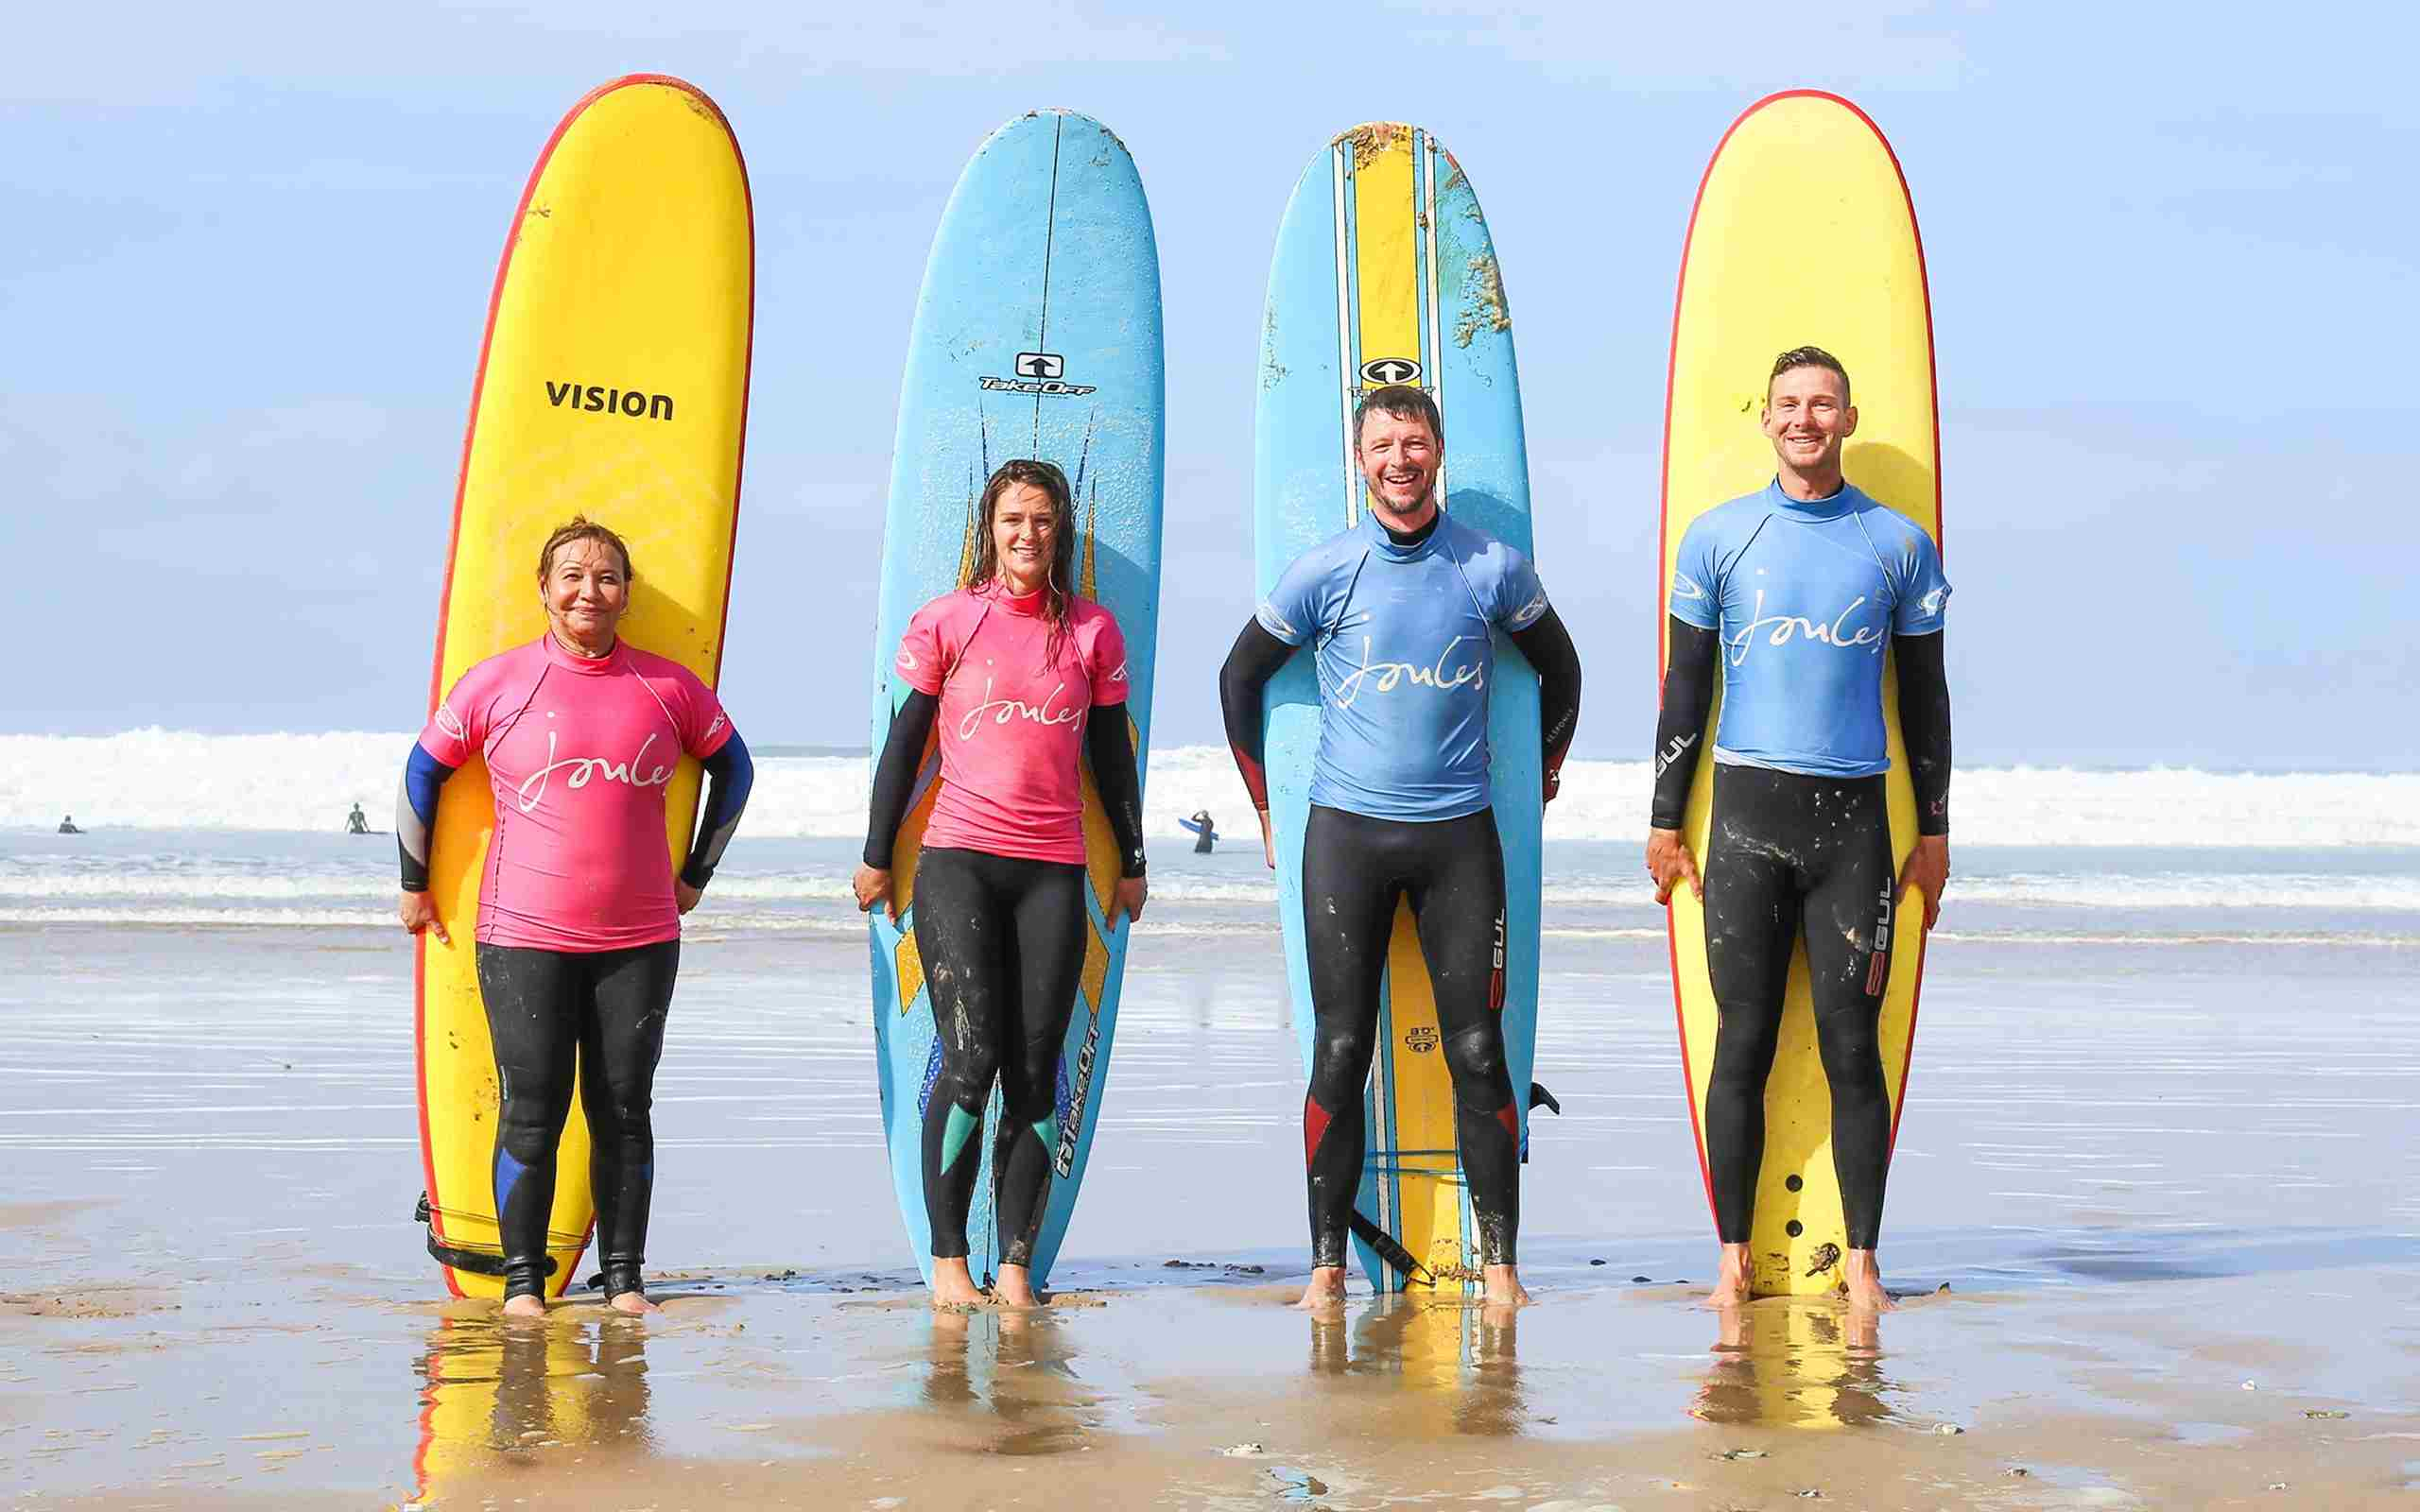 Group Surfing With The Extreme Academy